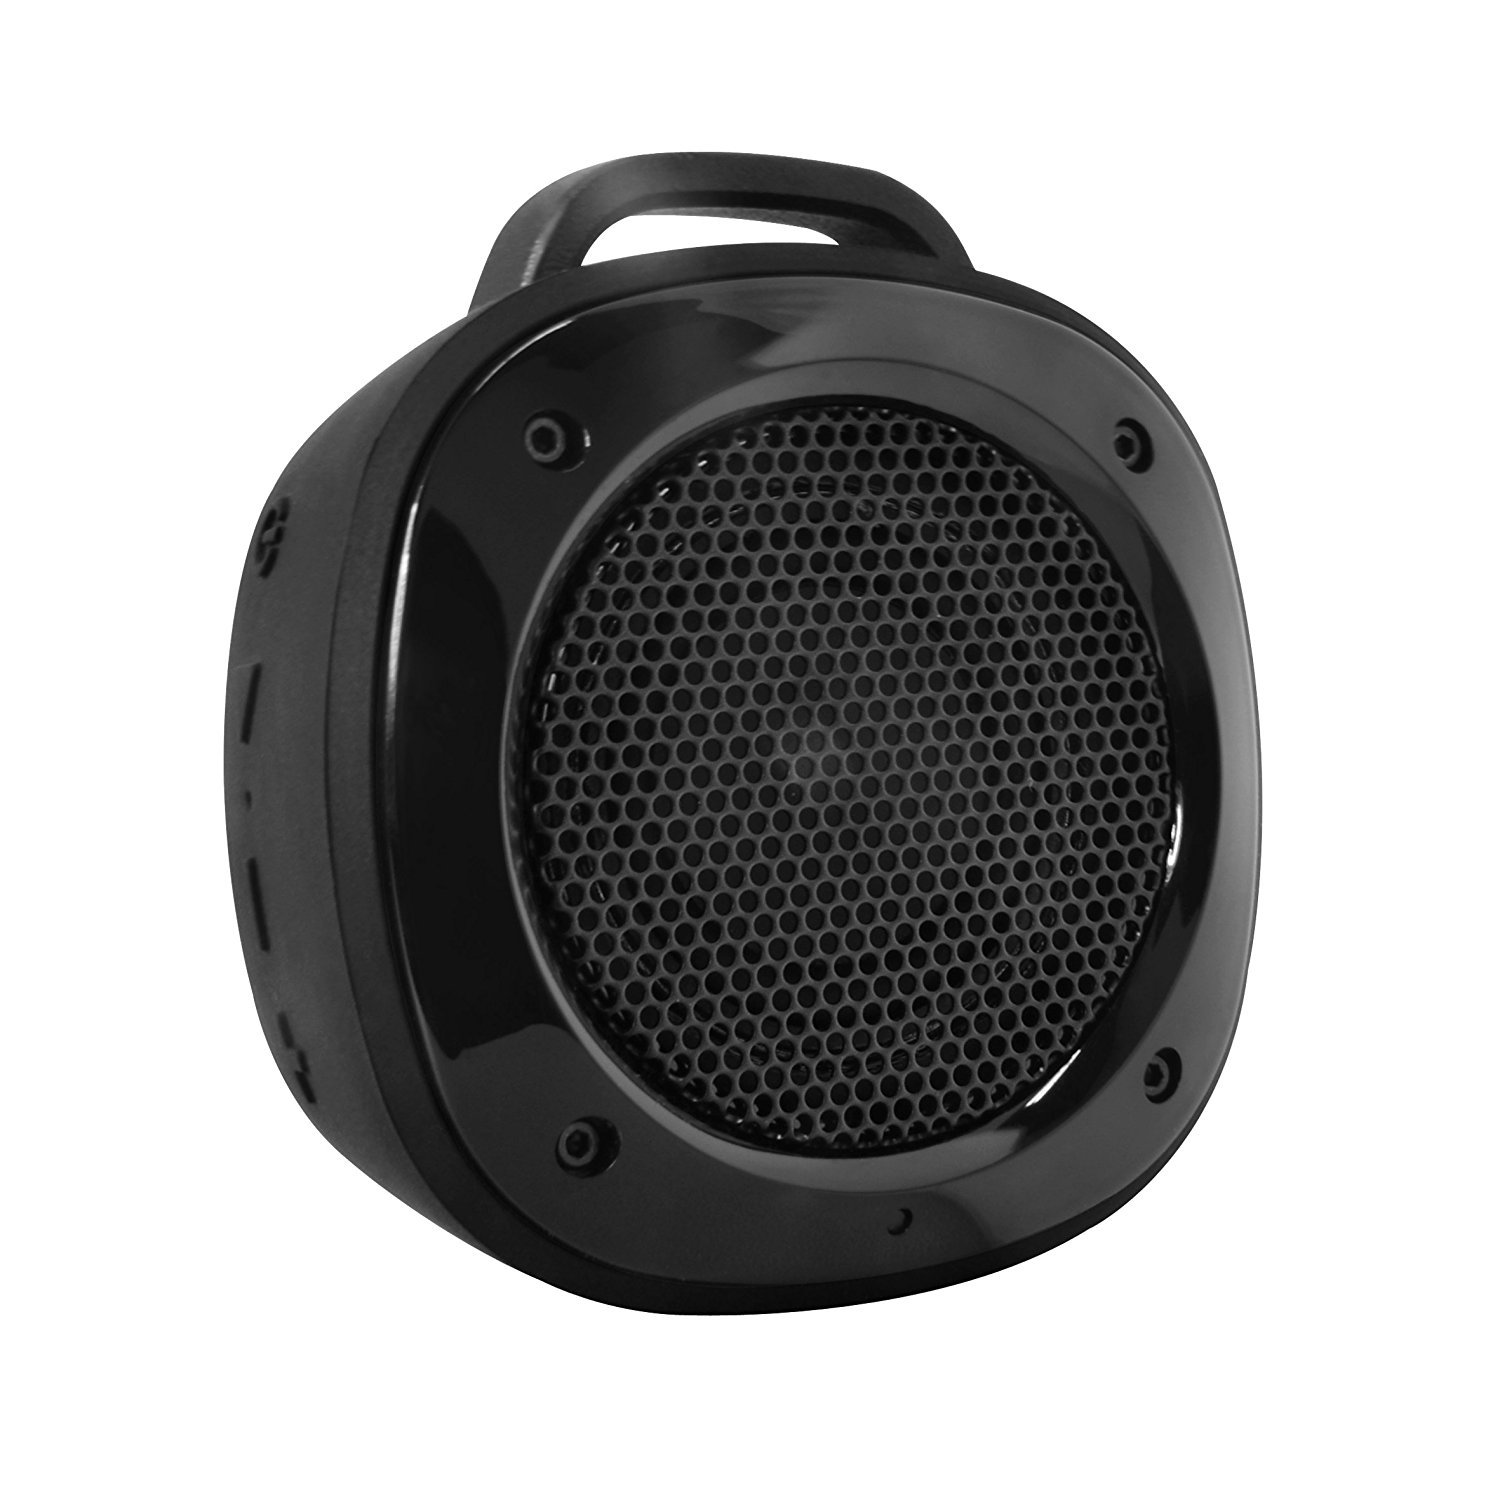 Divoom Airbeat-10 Water Resistant Bluetooth 3.0 Portable Speaker, with Suction Cup for Showers, Bike Mount speaker for Smartphone, iPhone, Galaxy, LG, iPad, Tablet PC (Black)